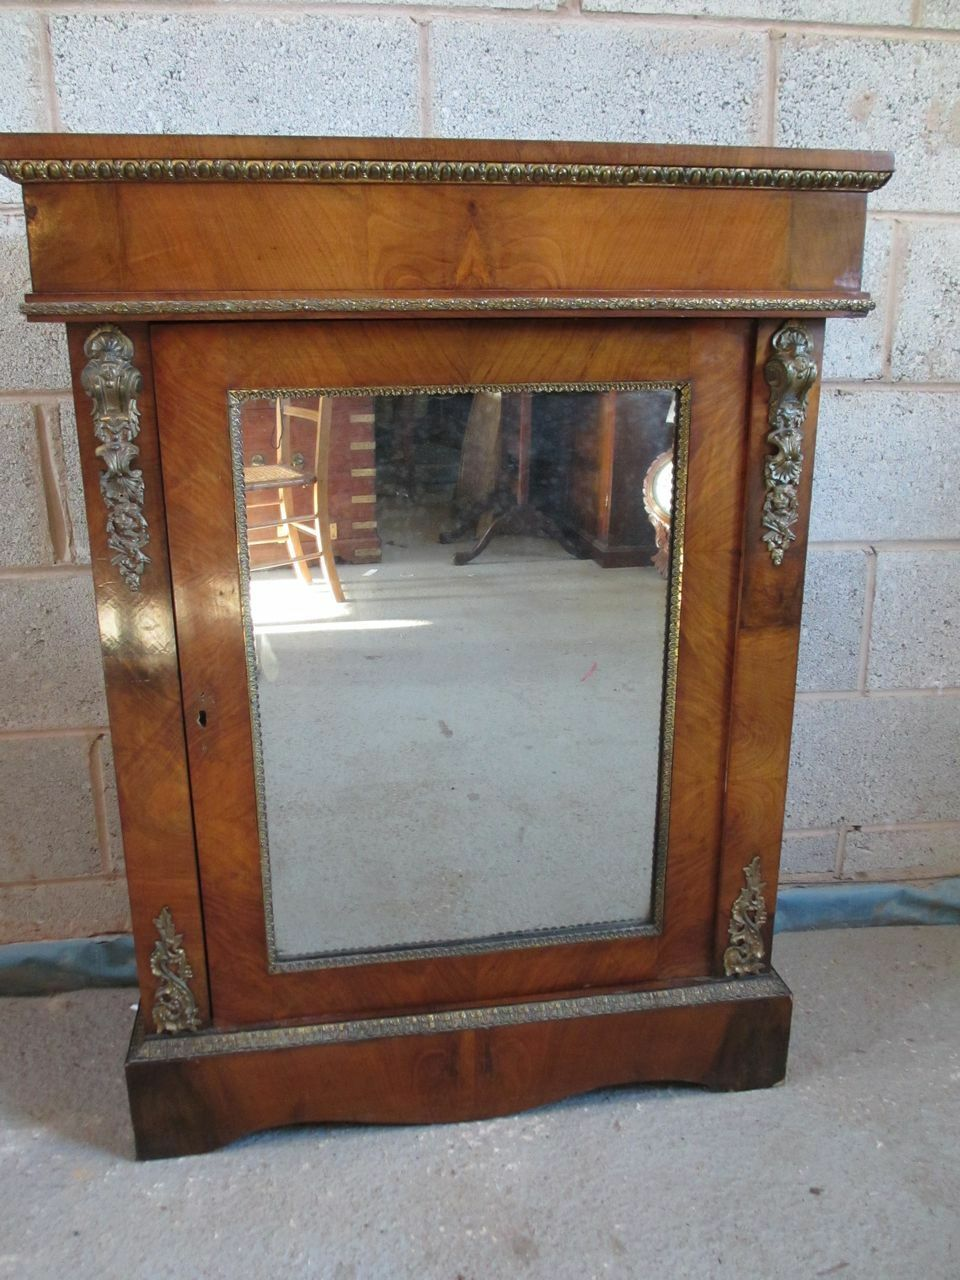 19th century Walnut mirror door ormulu mounted pier side cabinet (ref 1284)